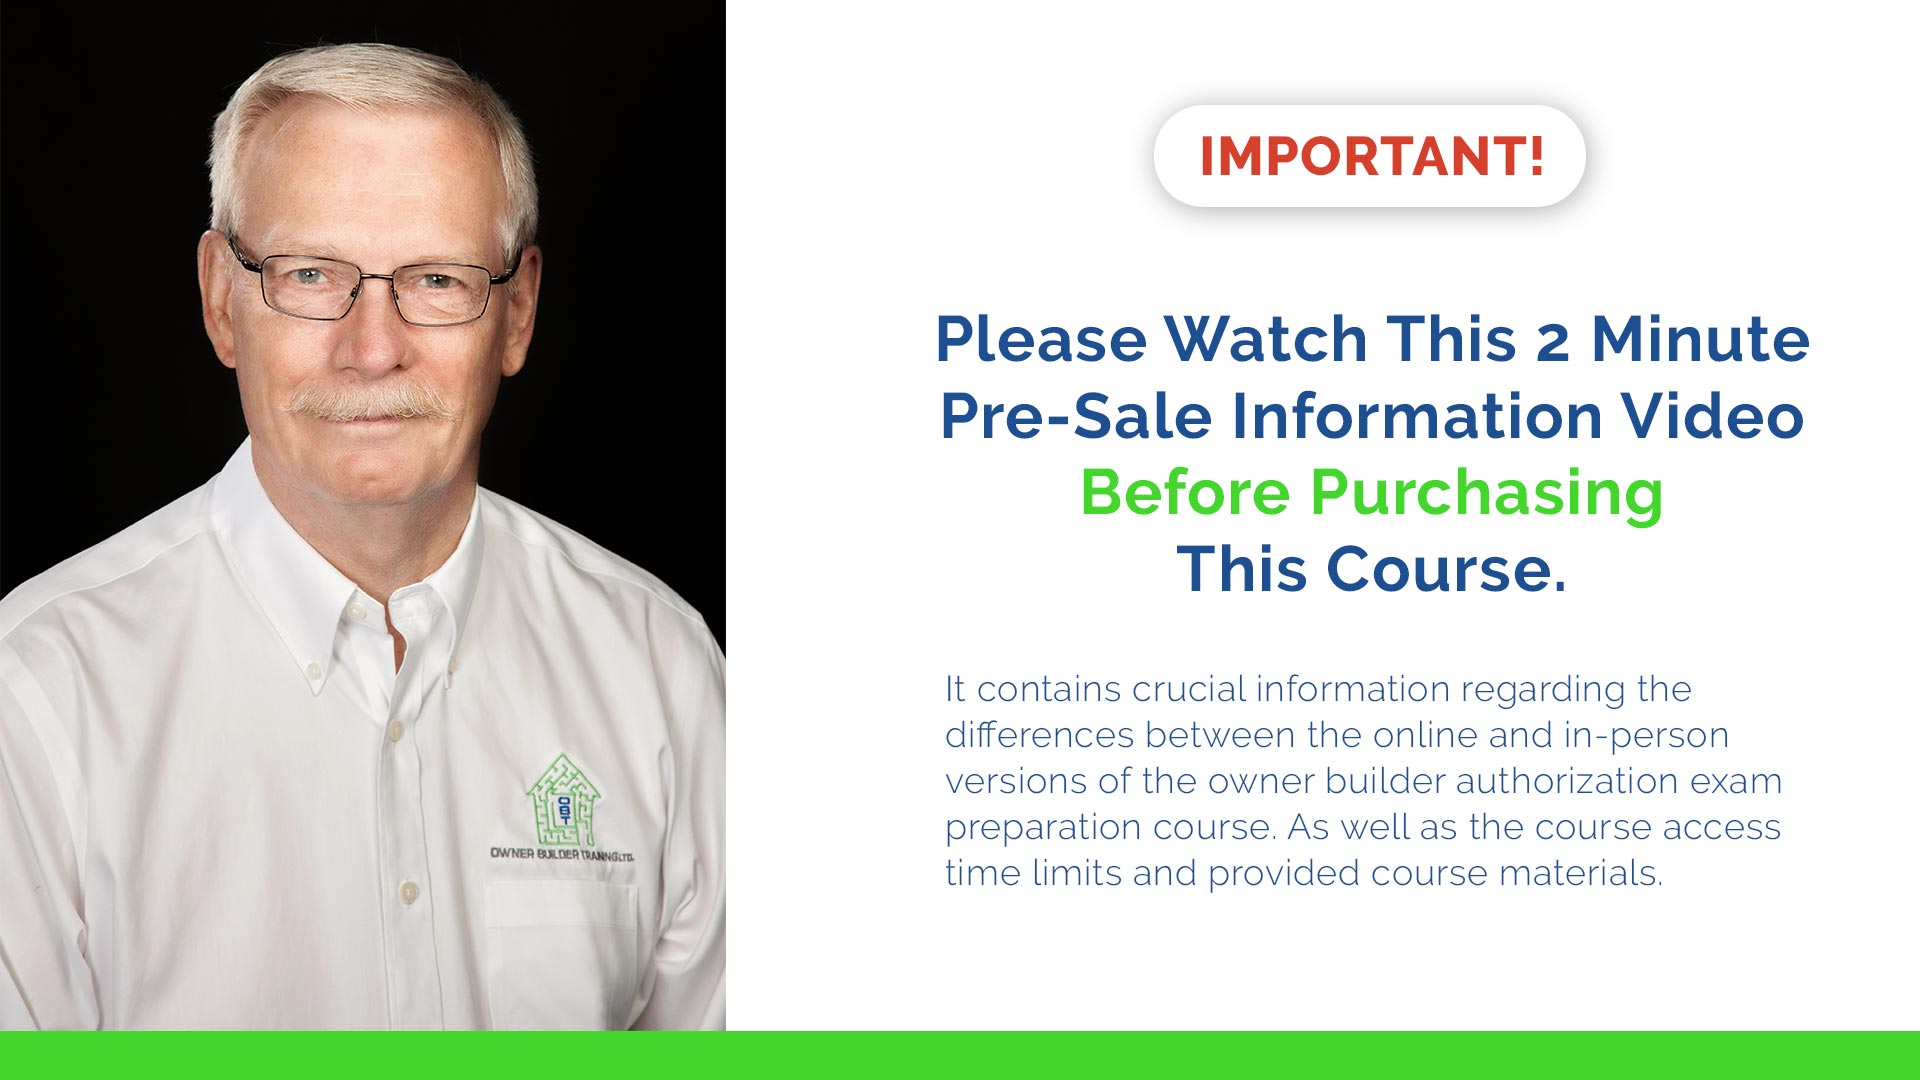 course-info-video-poster-image-v5